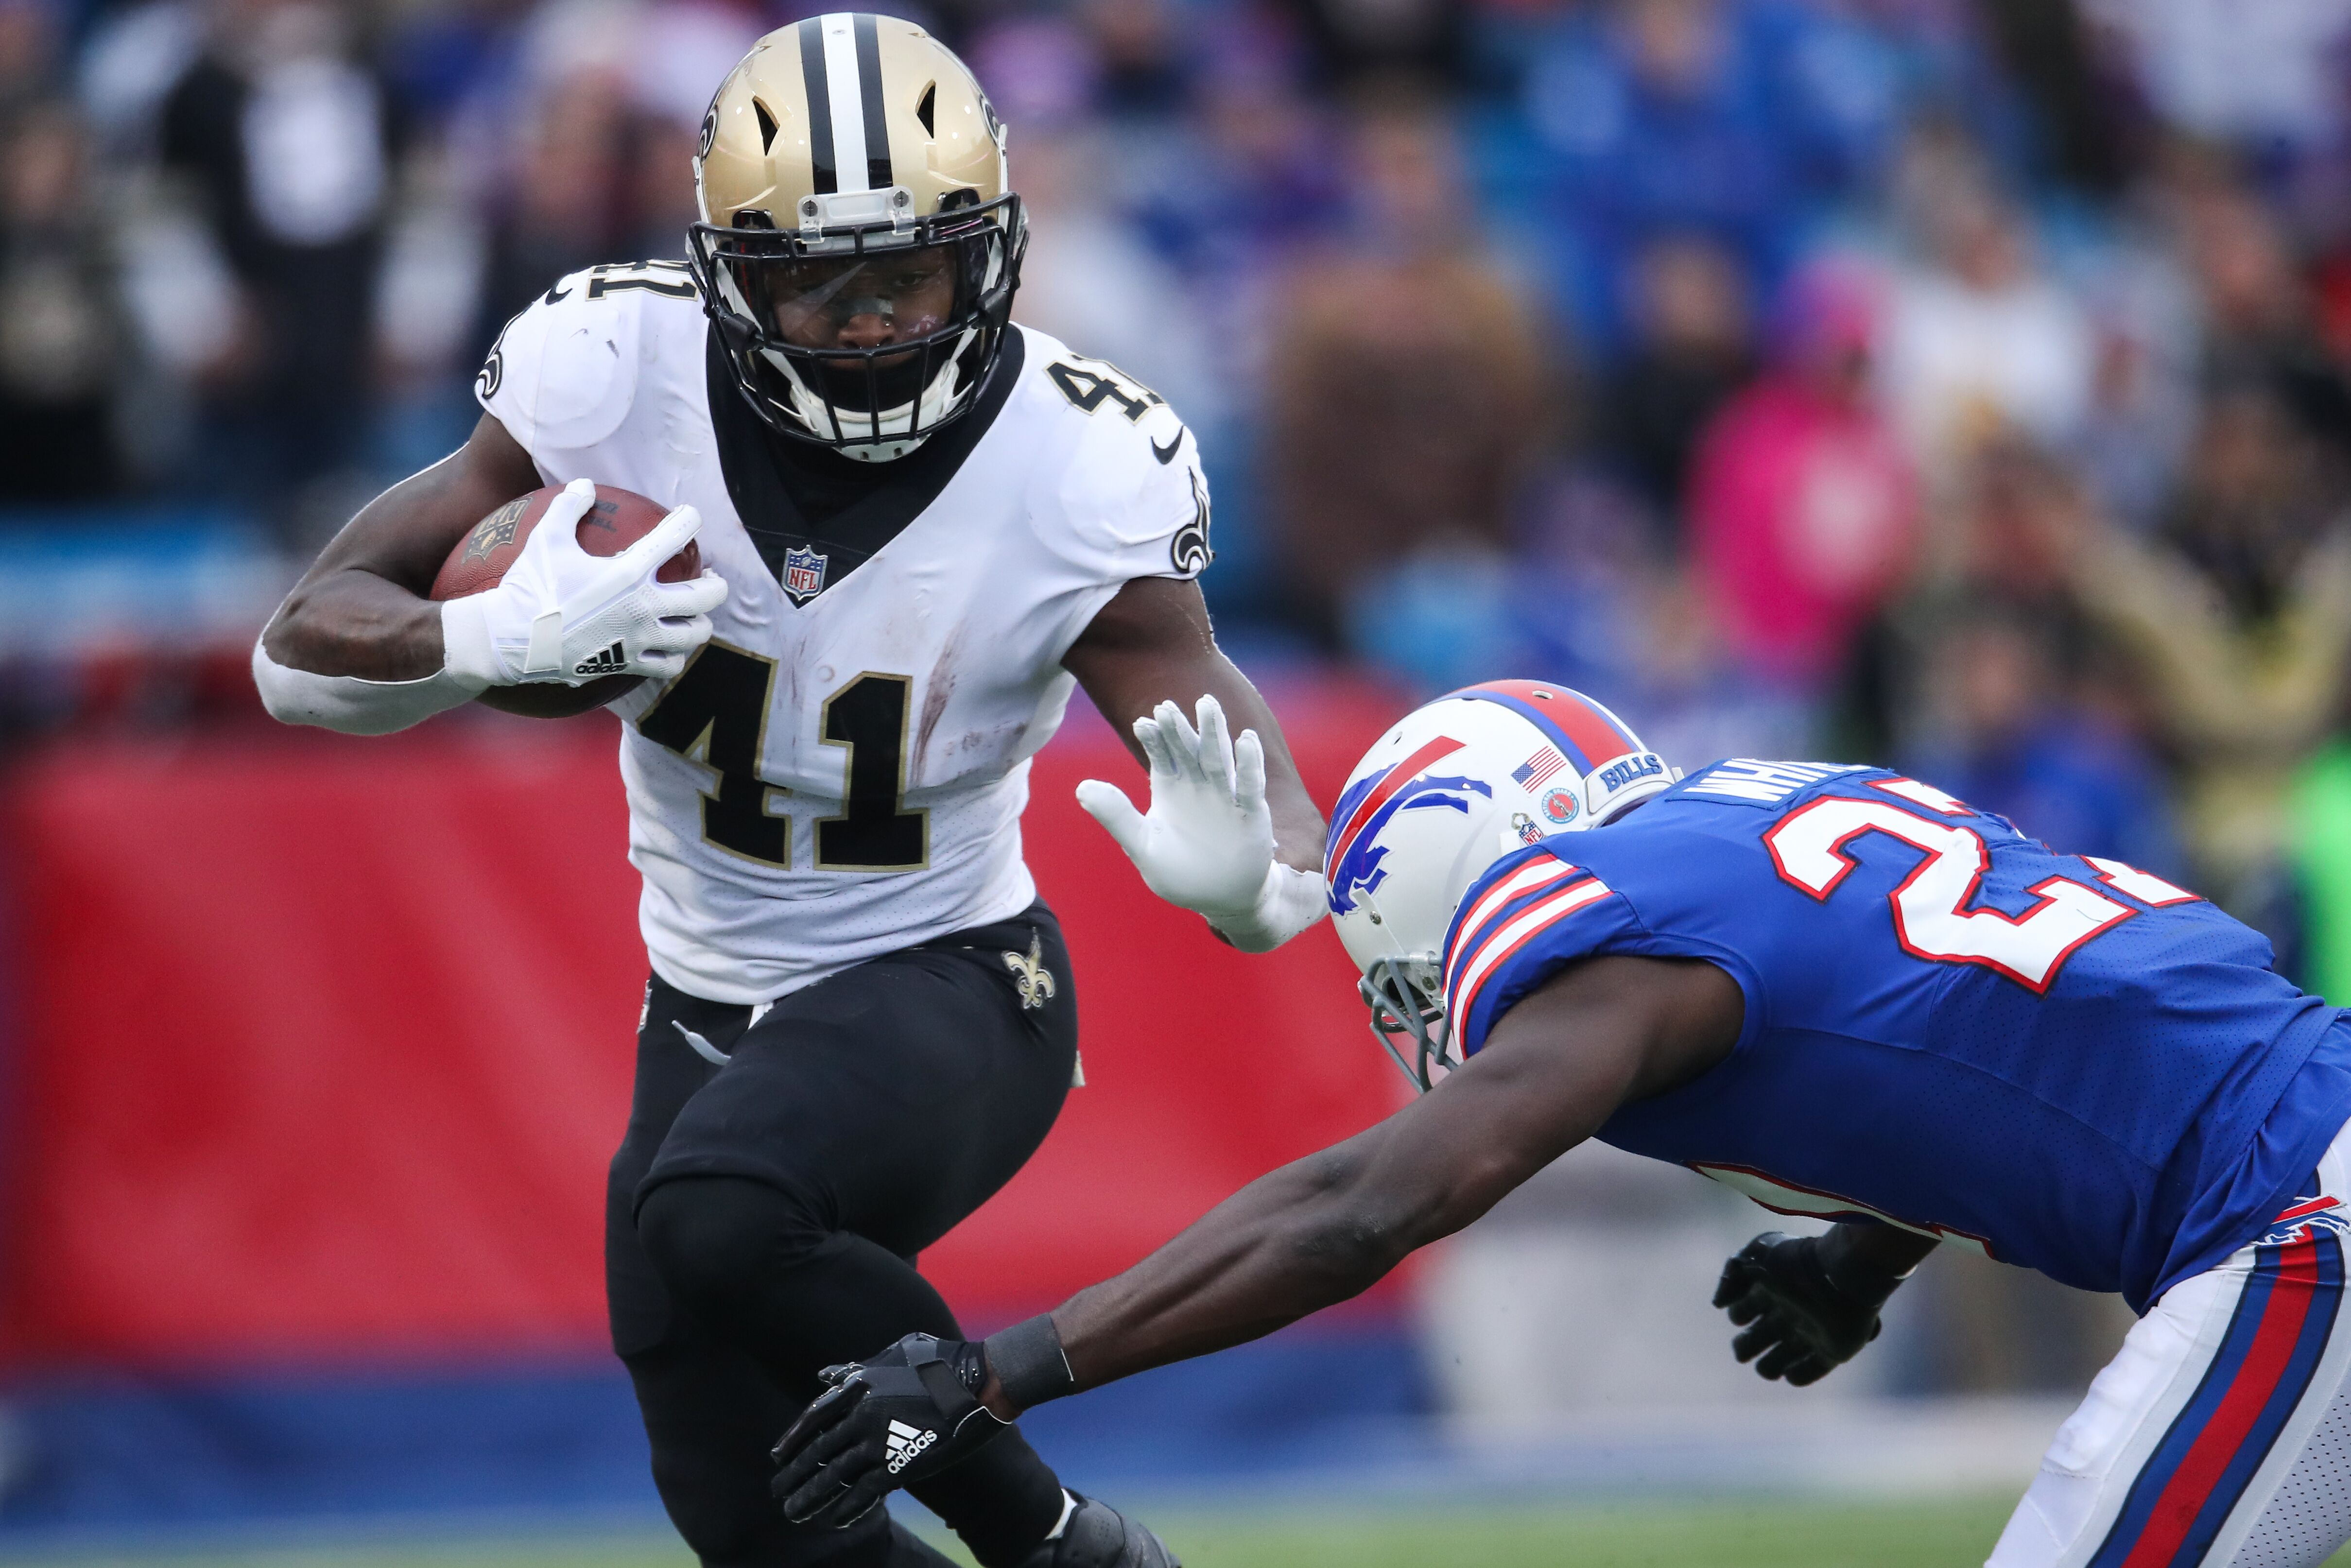 New Orleans Saints running back Alvin Kamara showed off his vocal talents during a commercial break for the ESPYs awards Wednesday night